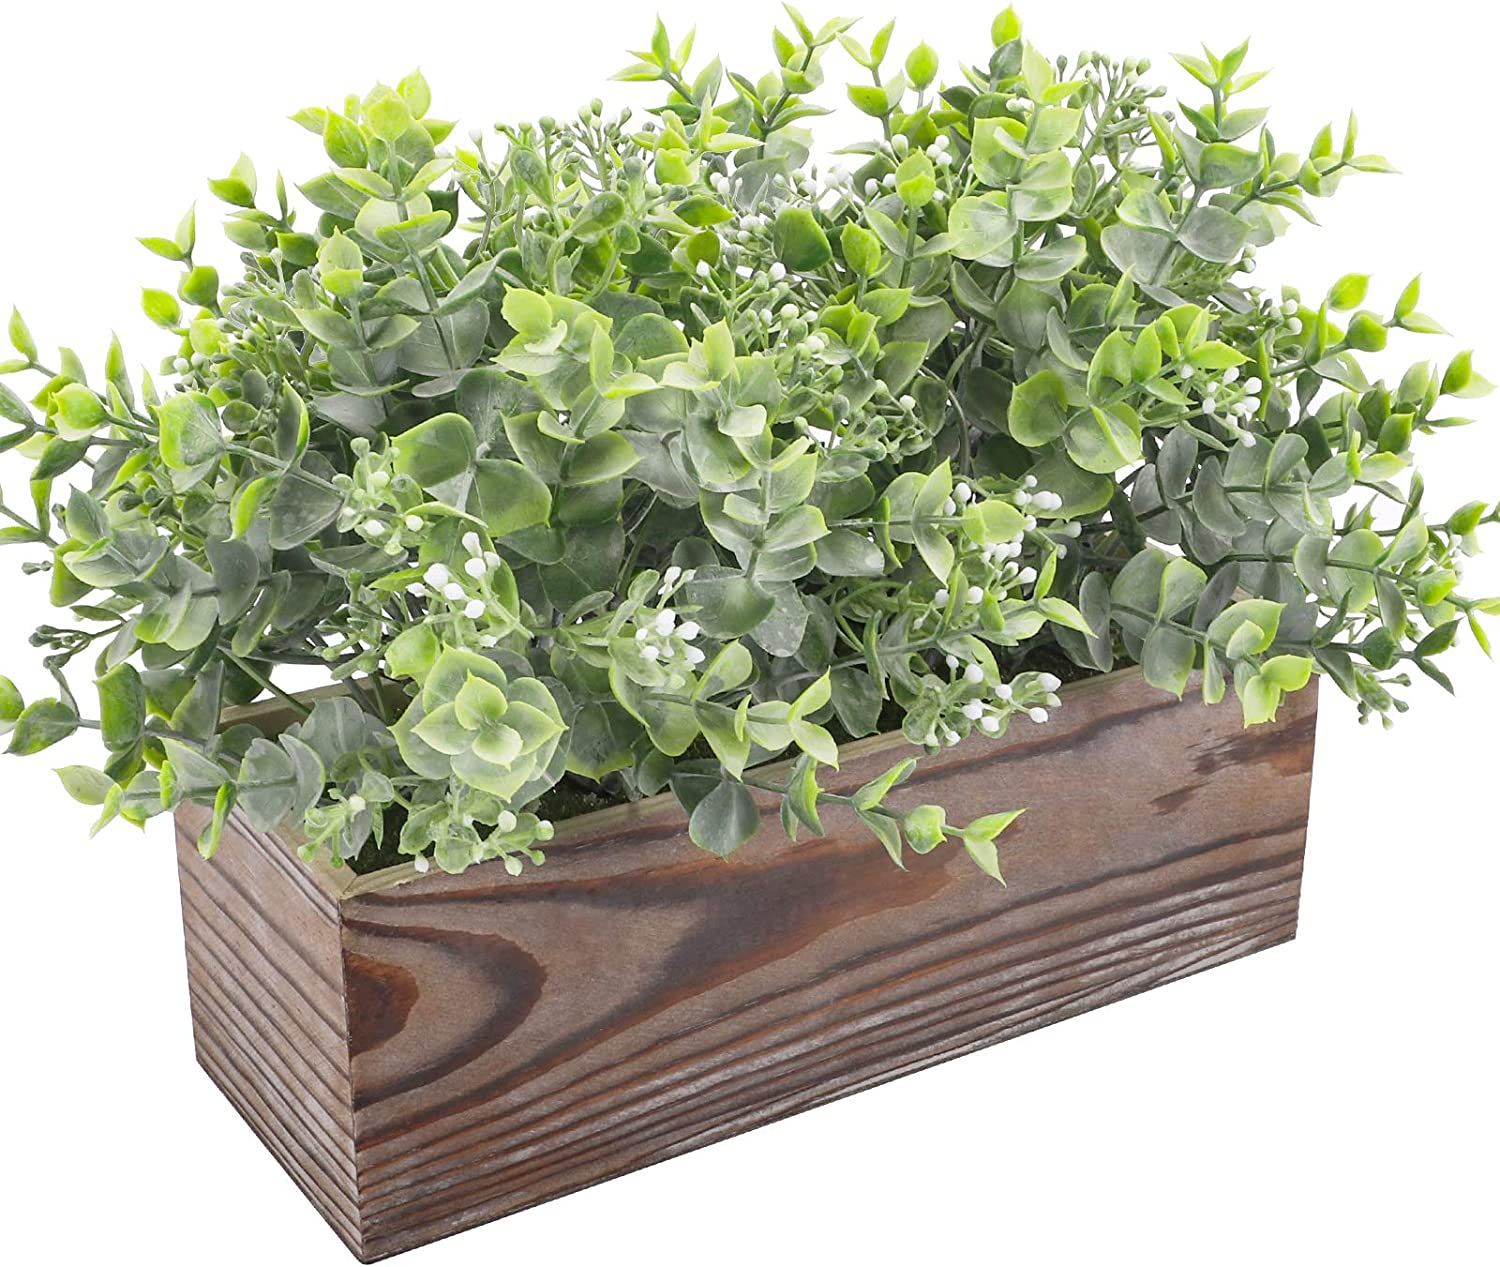 Funarty Fake Plants Artificial Eucalyptus in Rustic Wood Box Artificial Greenery Arrangement Potted Plants for Mantle Décor Windowsill Décor